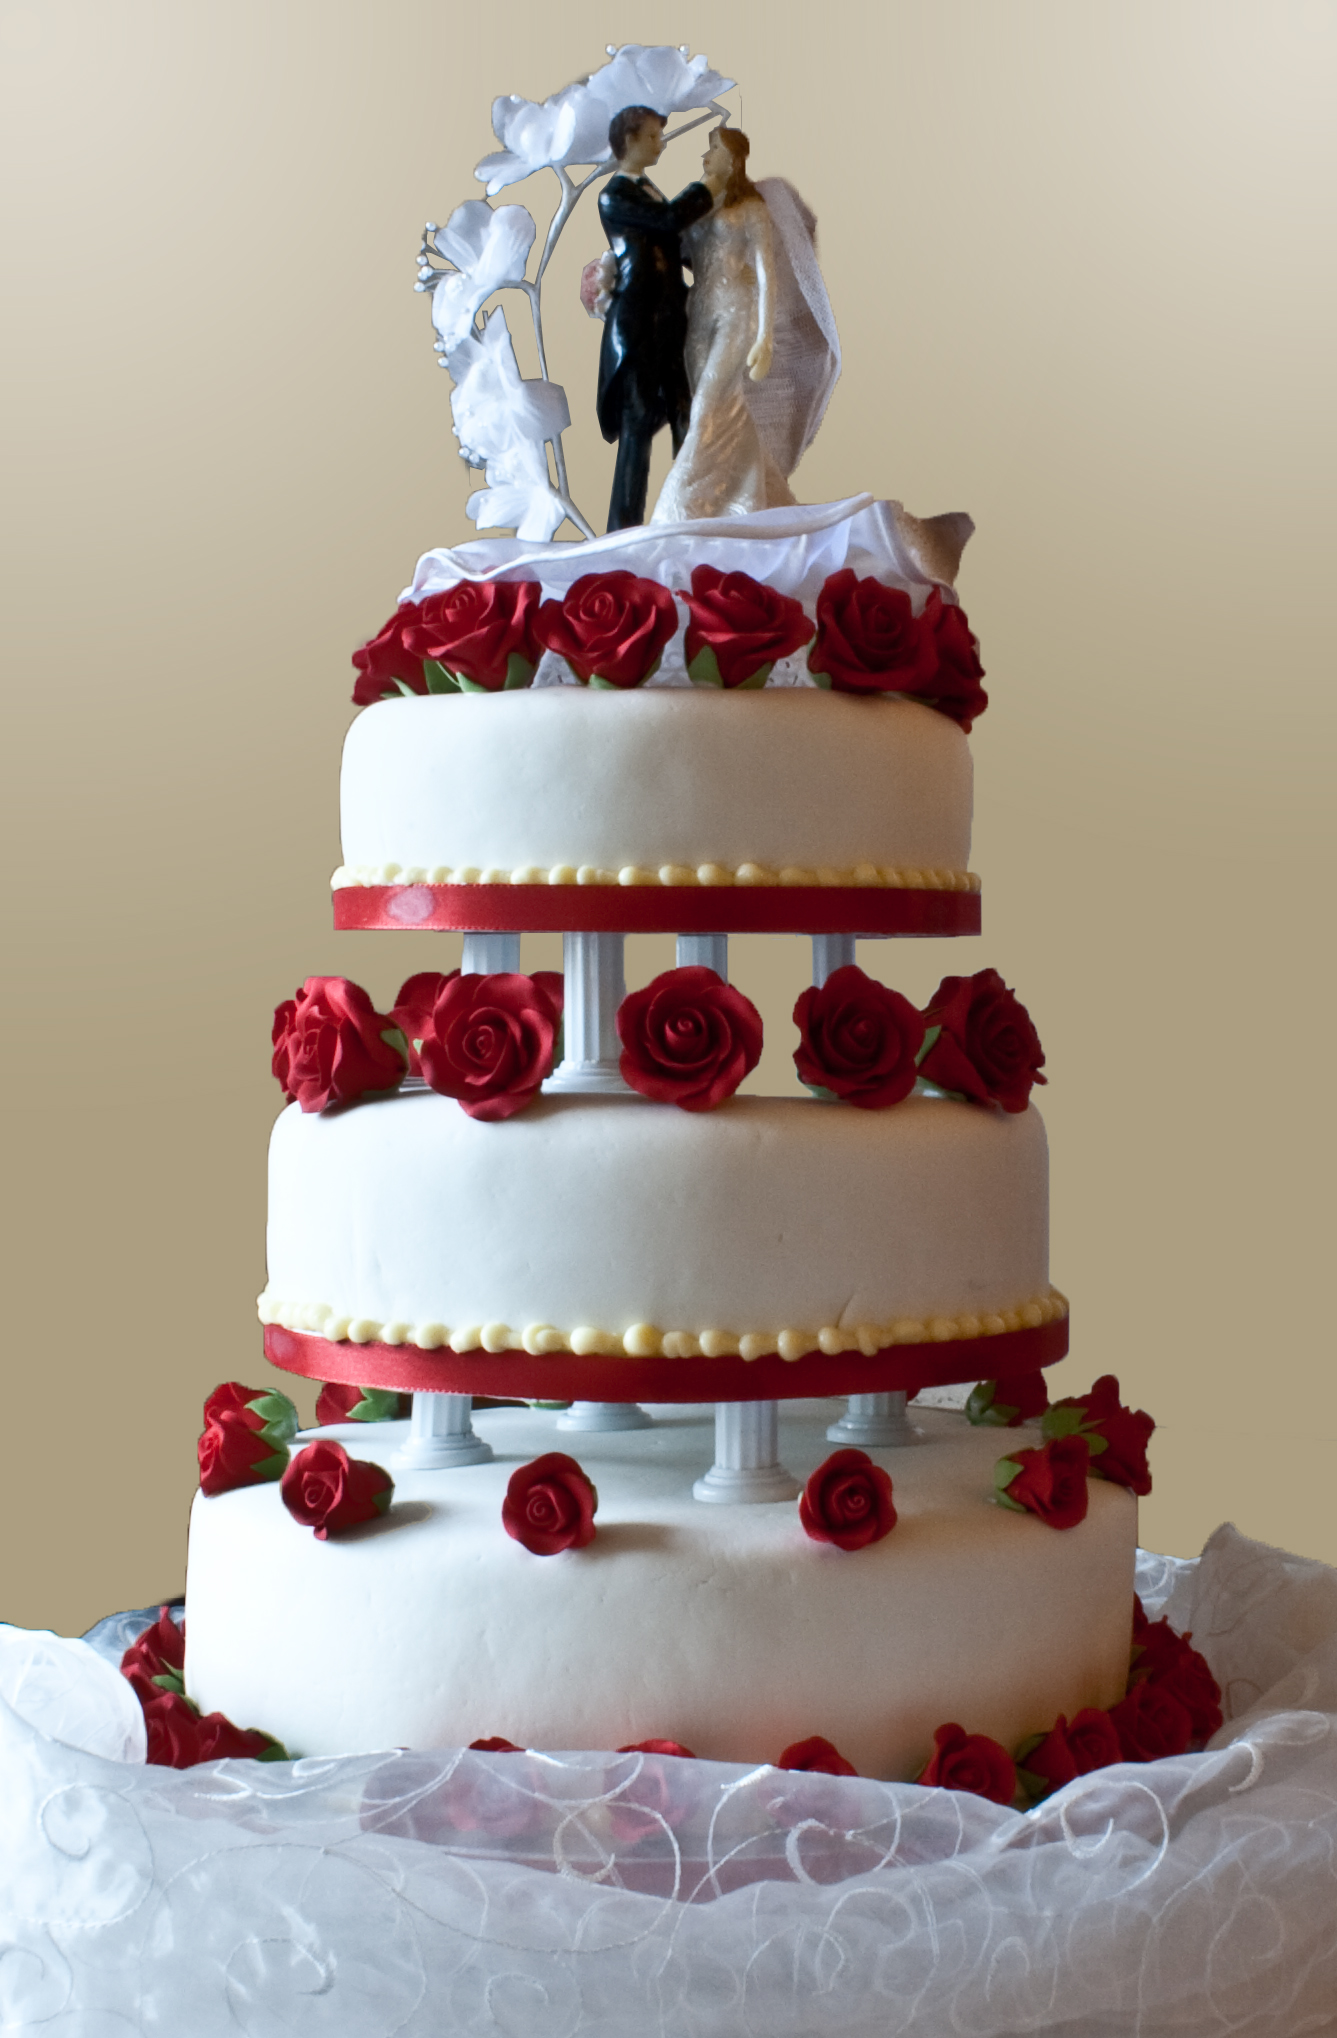 Cheesecake Wedding Cake Rochester Ny